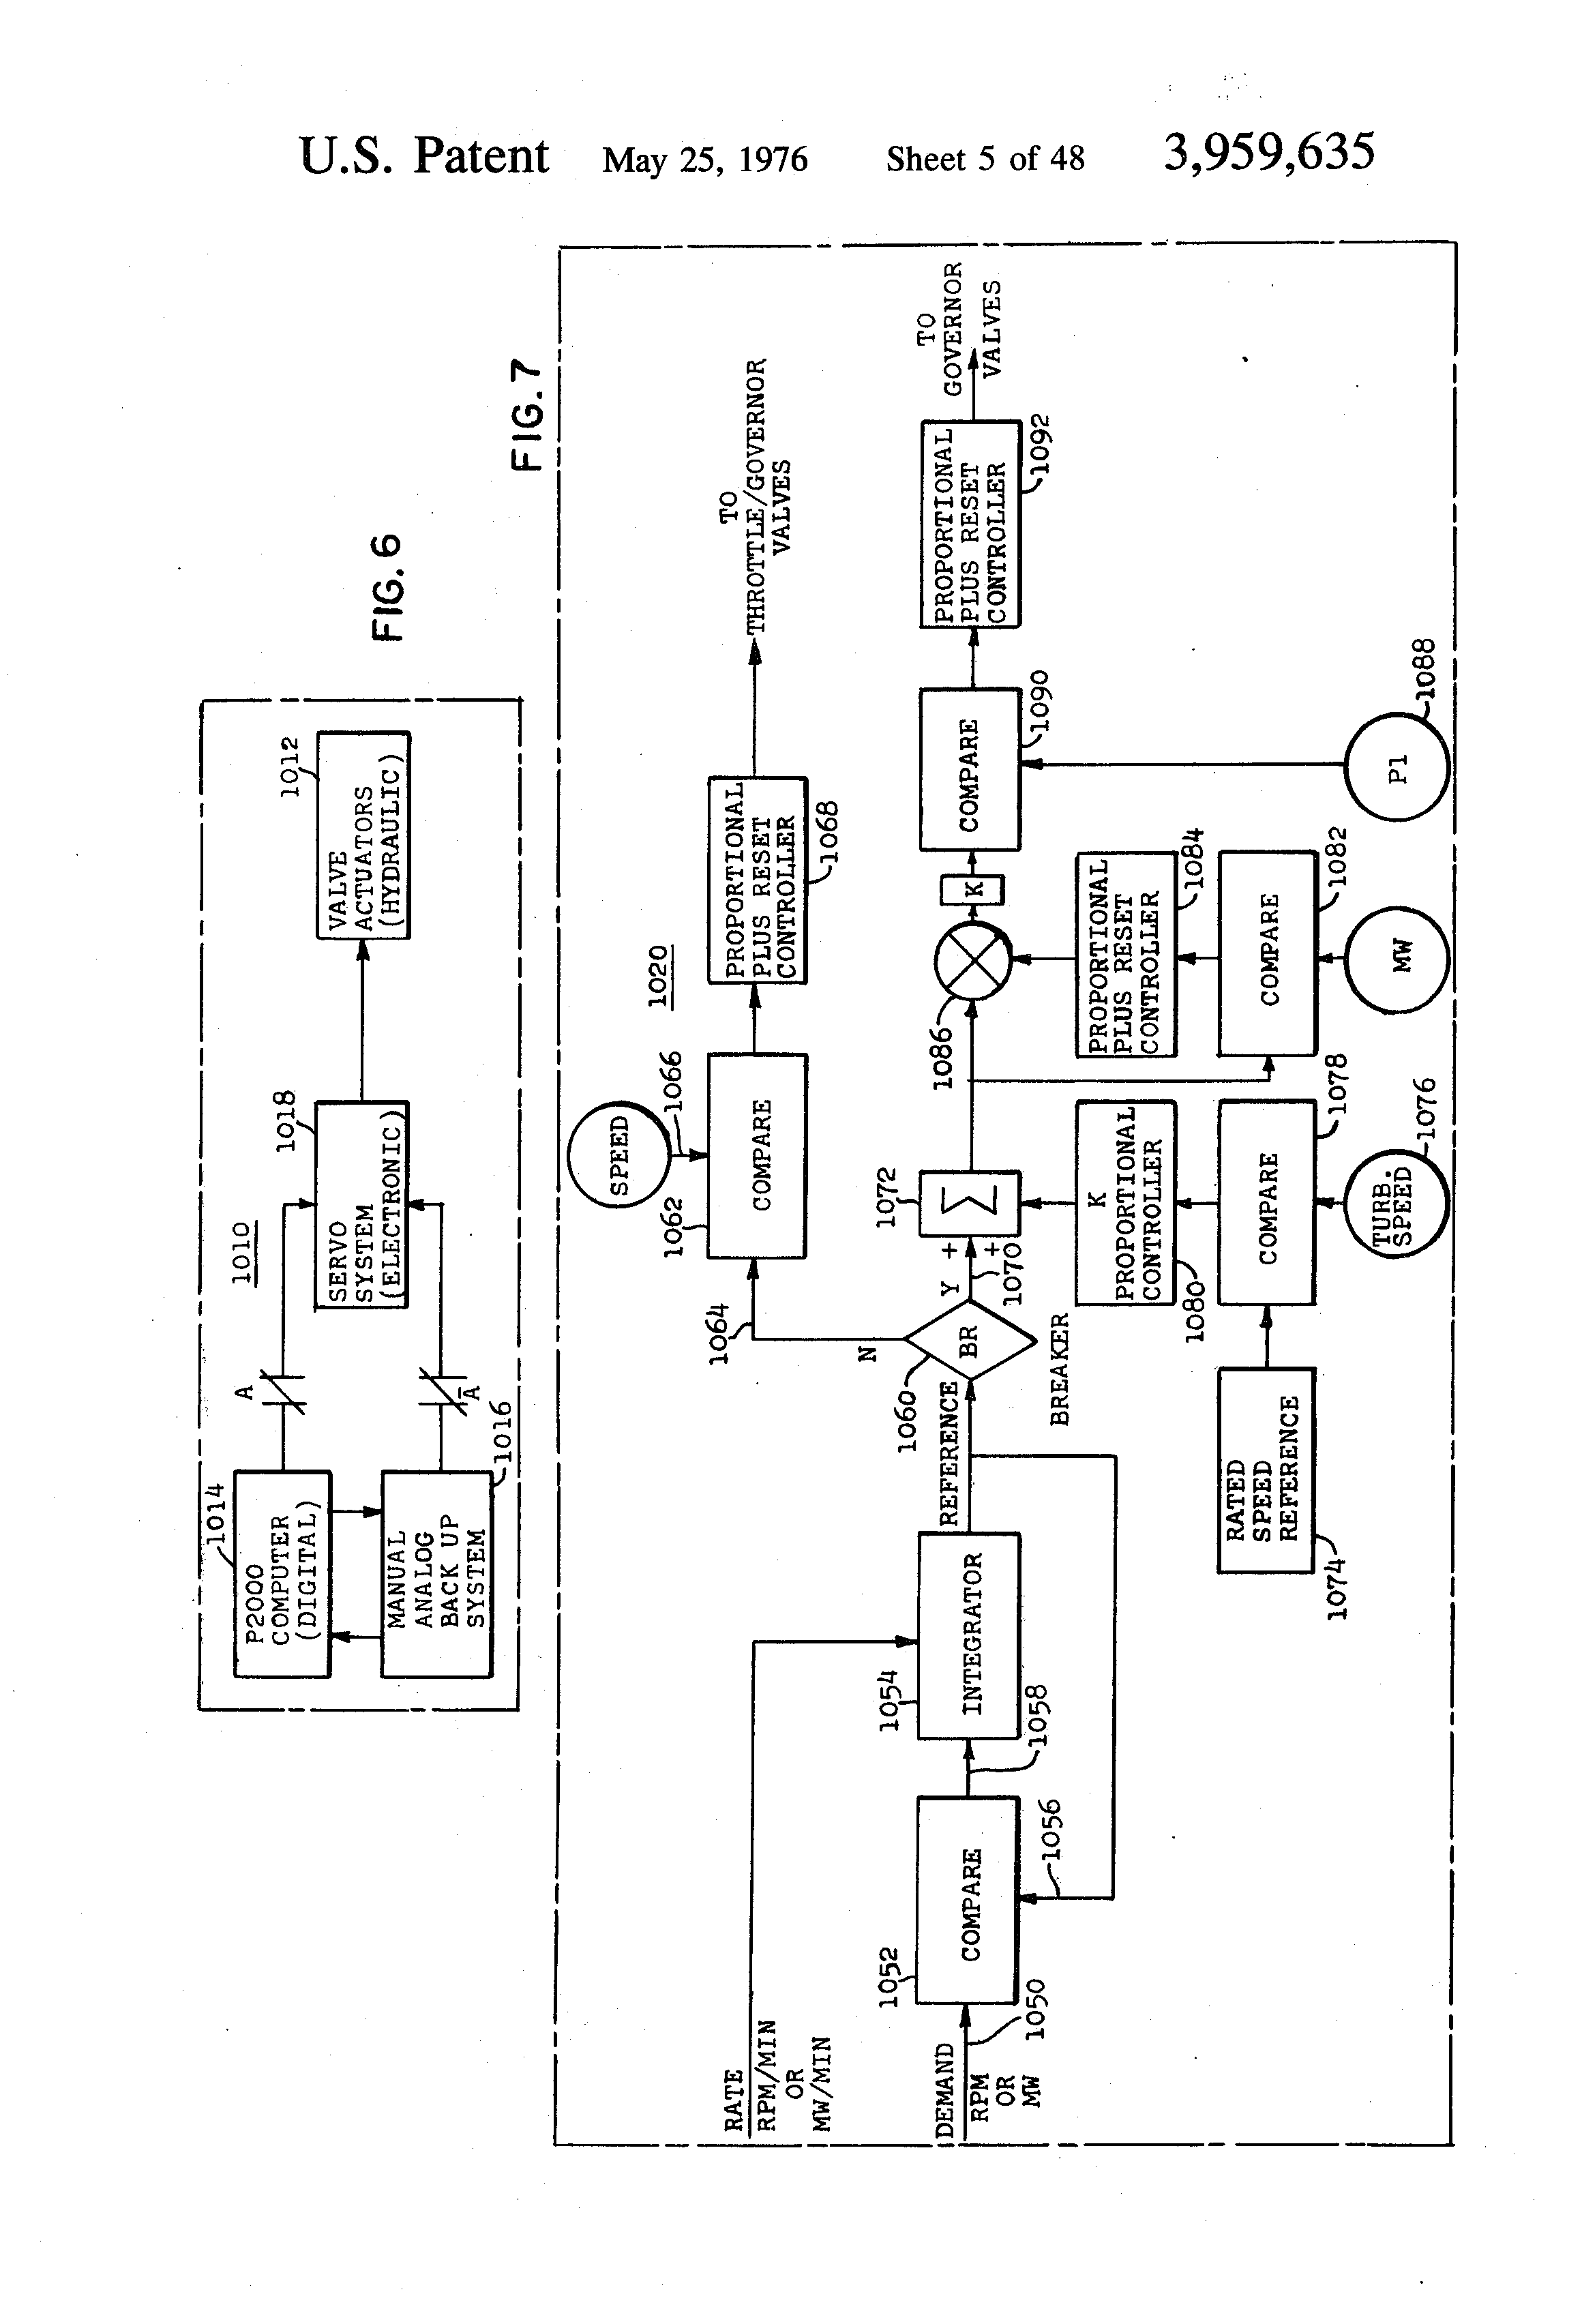 Patent US System and method for operating a steam turbine